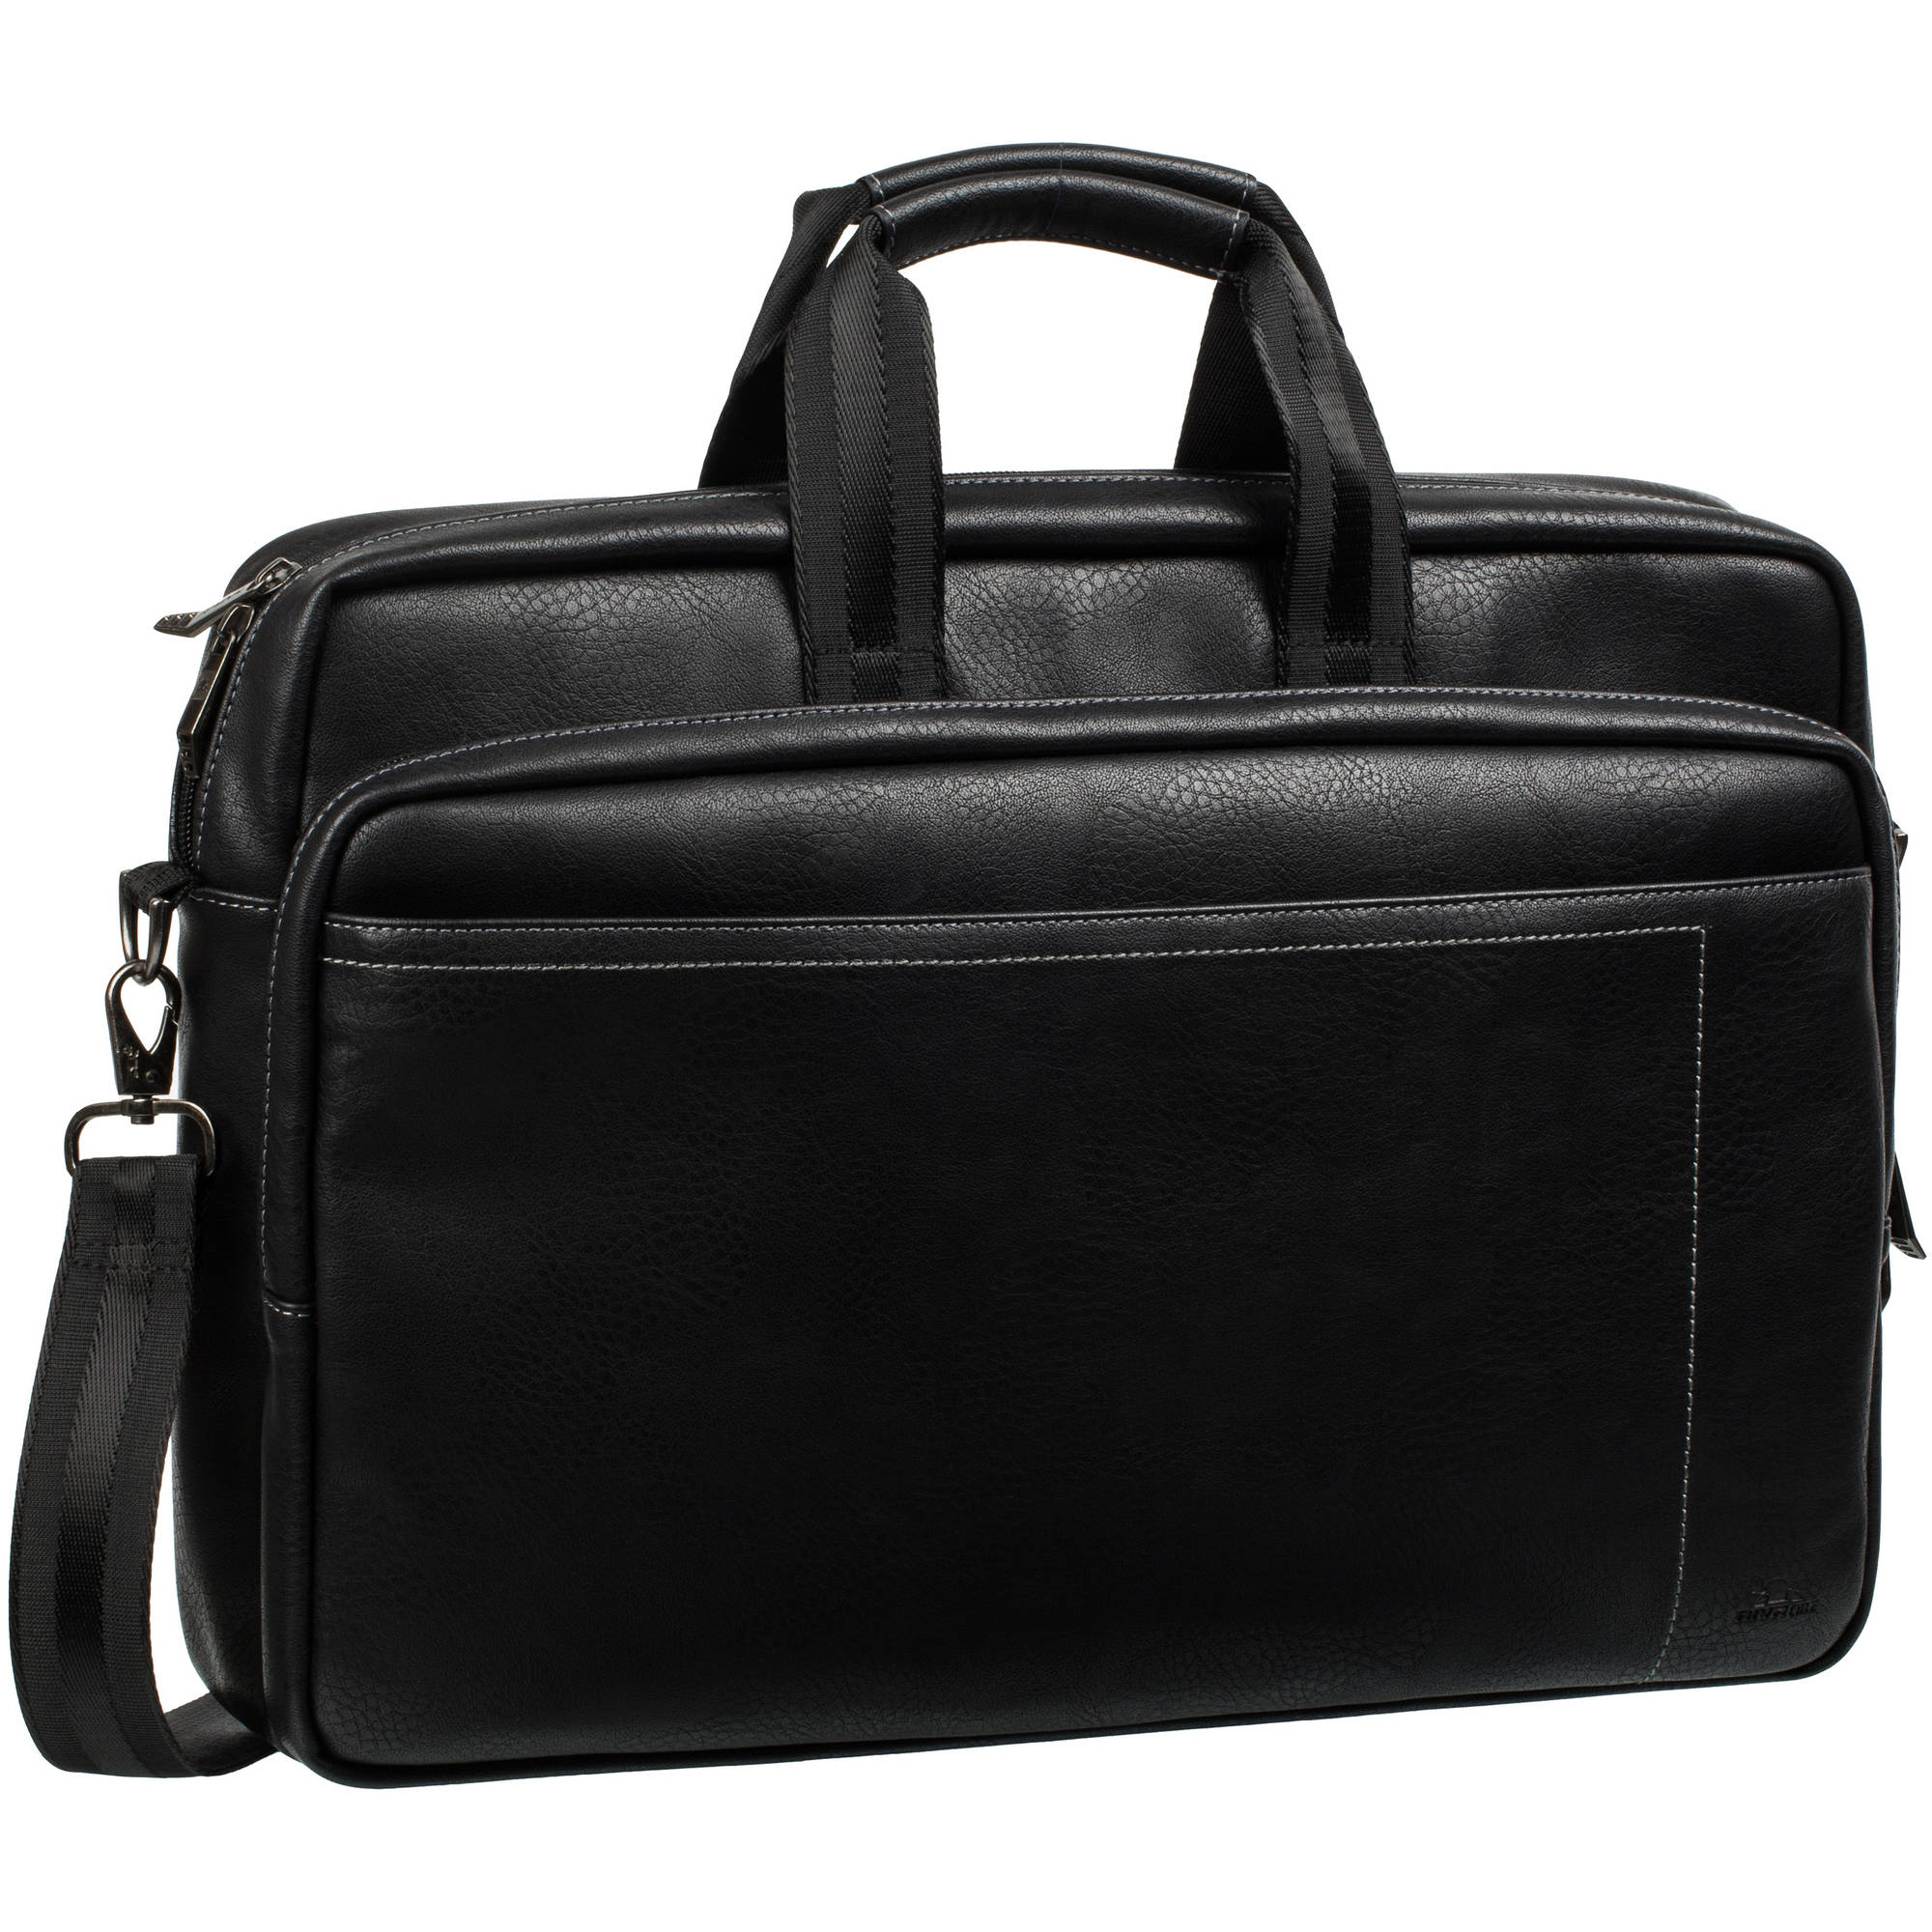 "RIVACASE 16"" Laptop Bag 8940, Black"